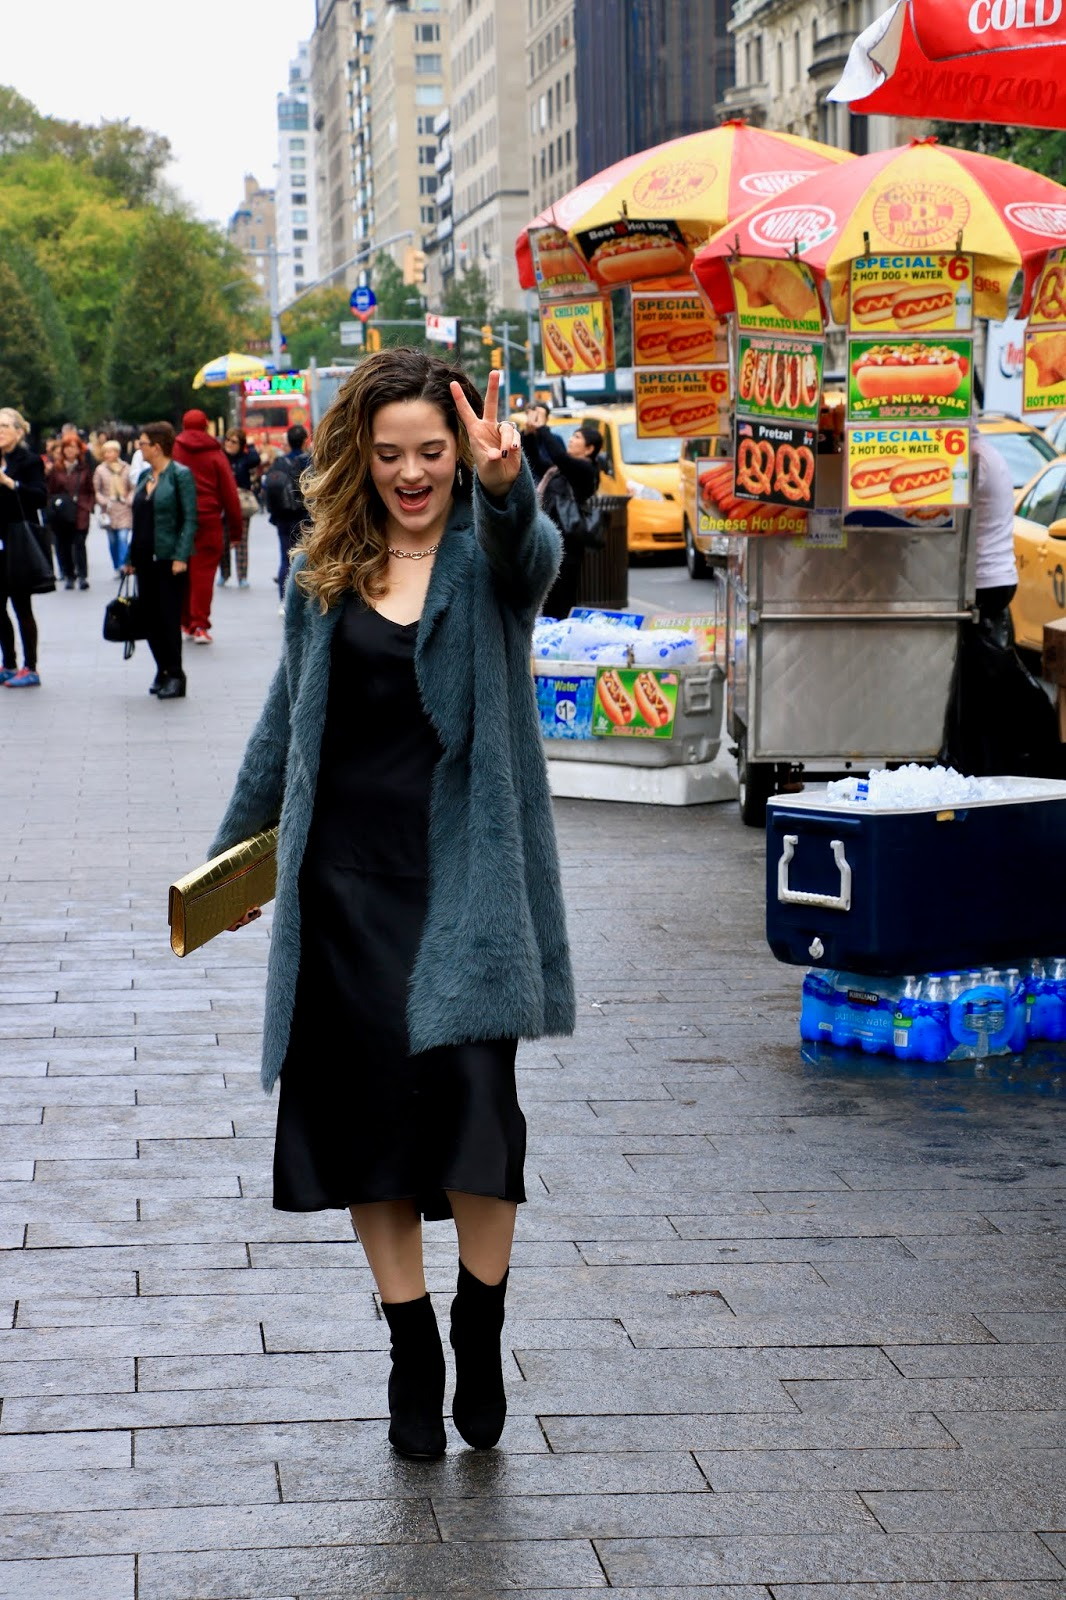 Nyc fashion blogger Kathleen Harper's street style.